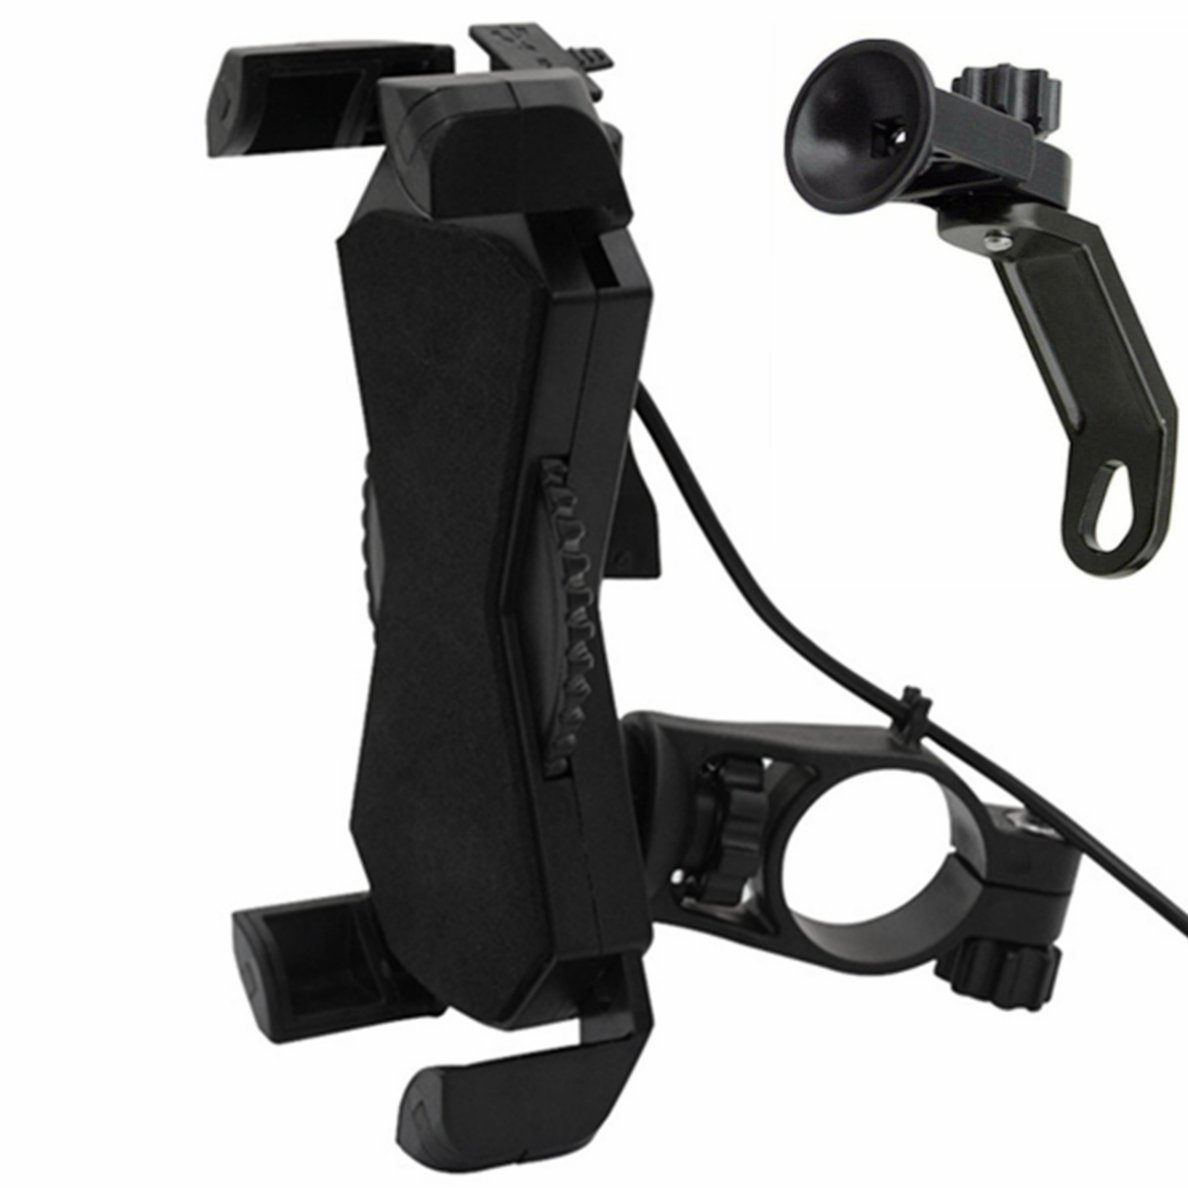 Motorcycle Phone Mount with USB Charger Port,DHYSTAR Bike Motorcycle Cell Phone Holder Mount Stand Bracket for Most Mobile Smartphones 4 to 7 //GPS,Adjustable Clamp,on Handlebar//Mirror